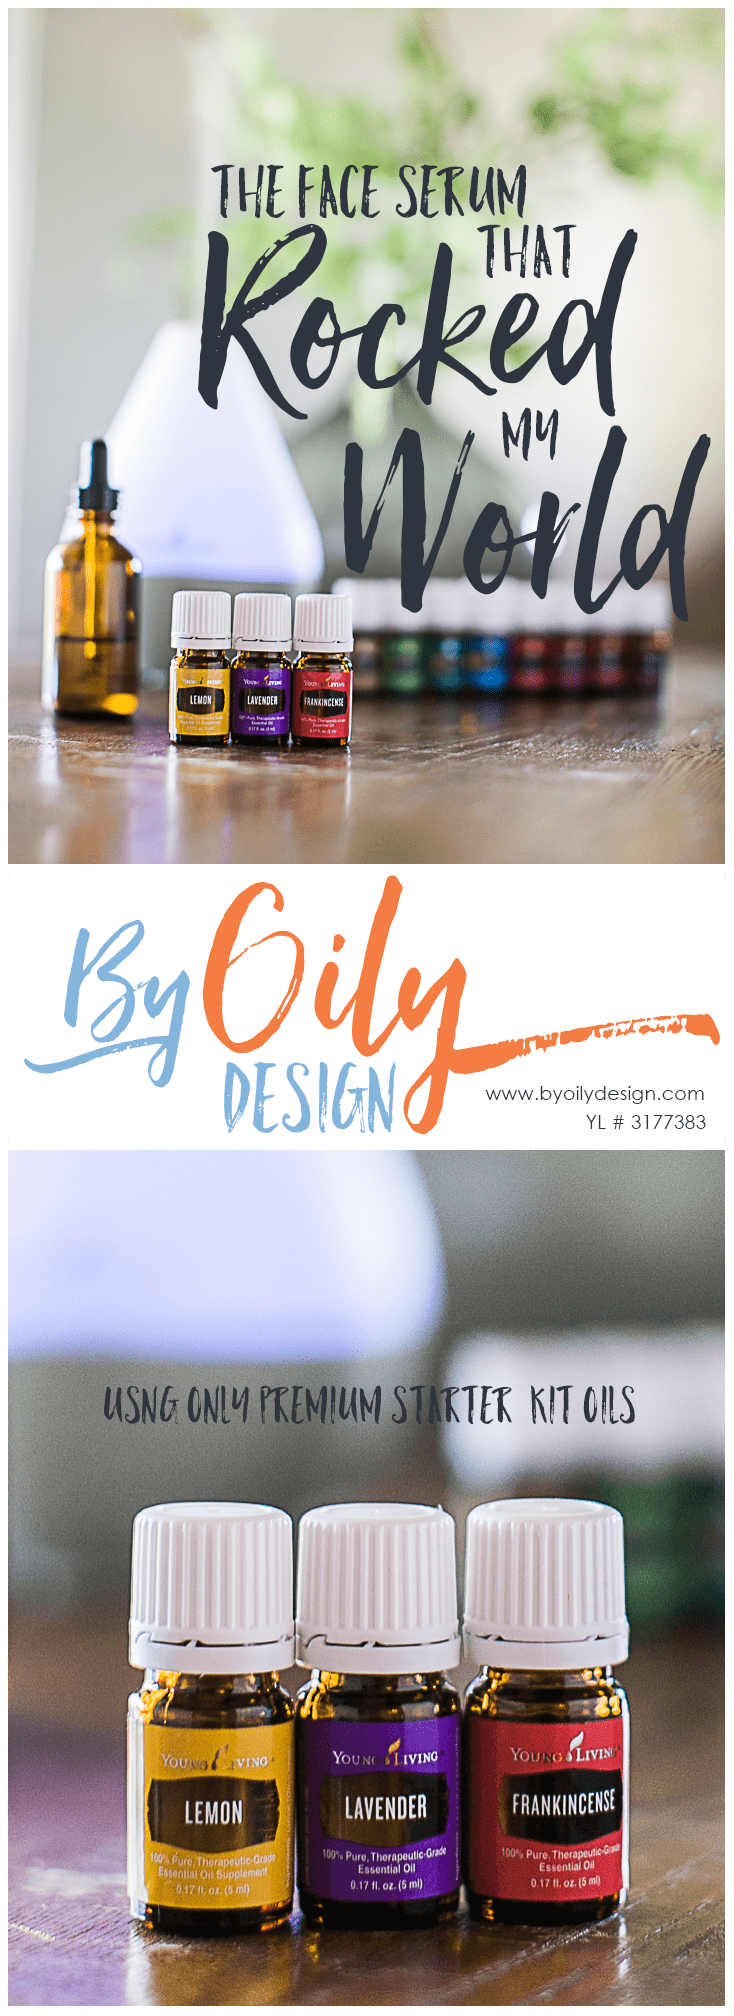 Looking for a Young Living Voucher or Coupon code? - By Oily